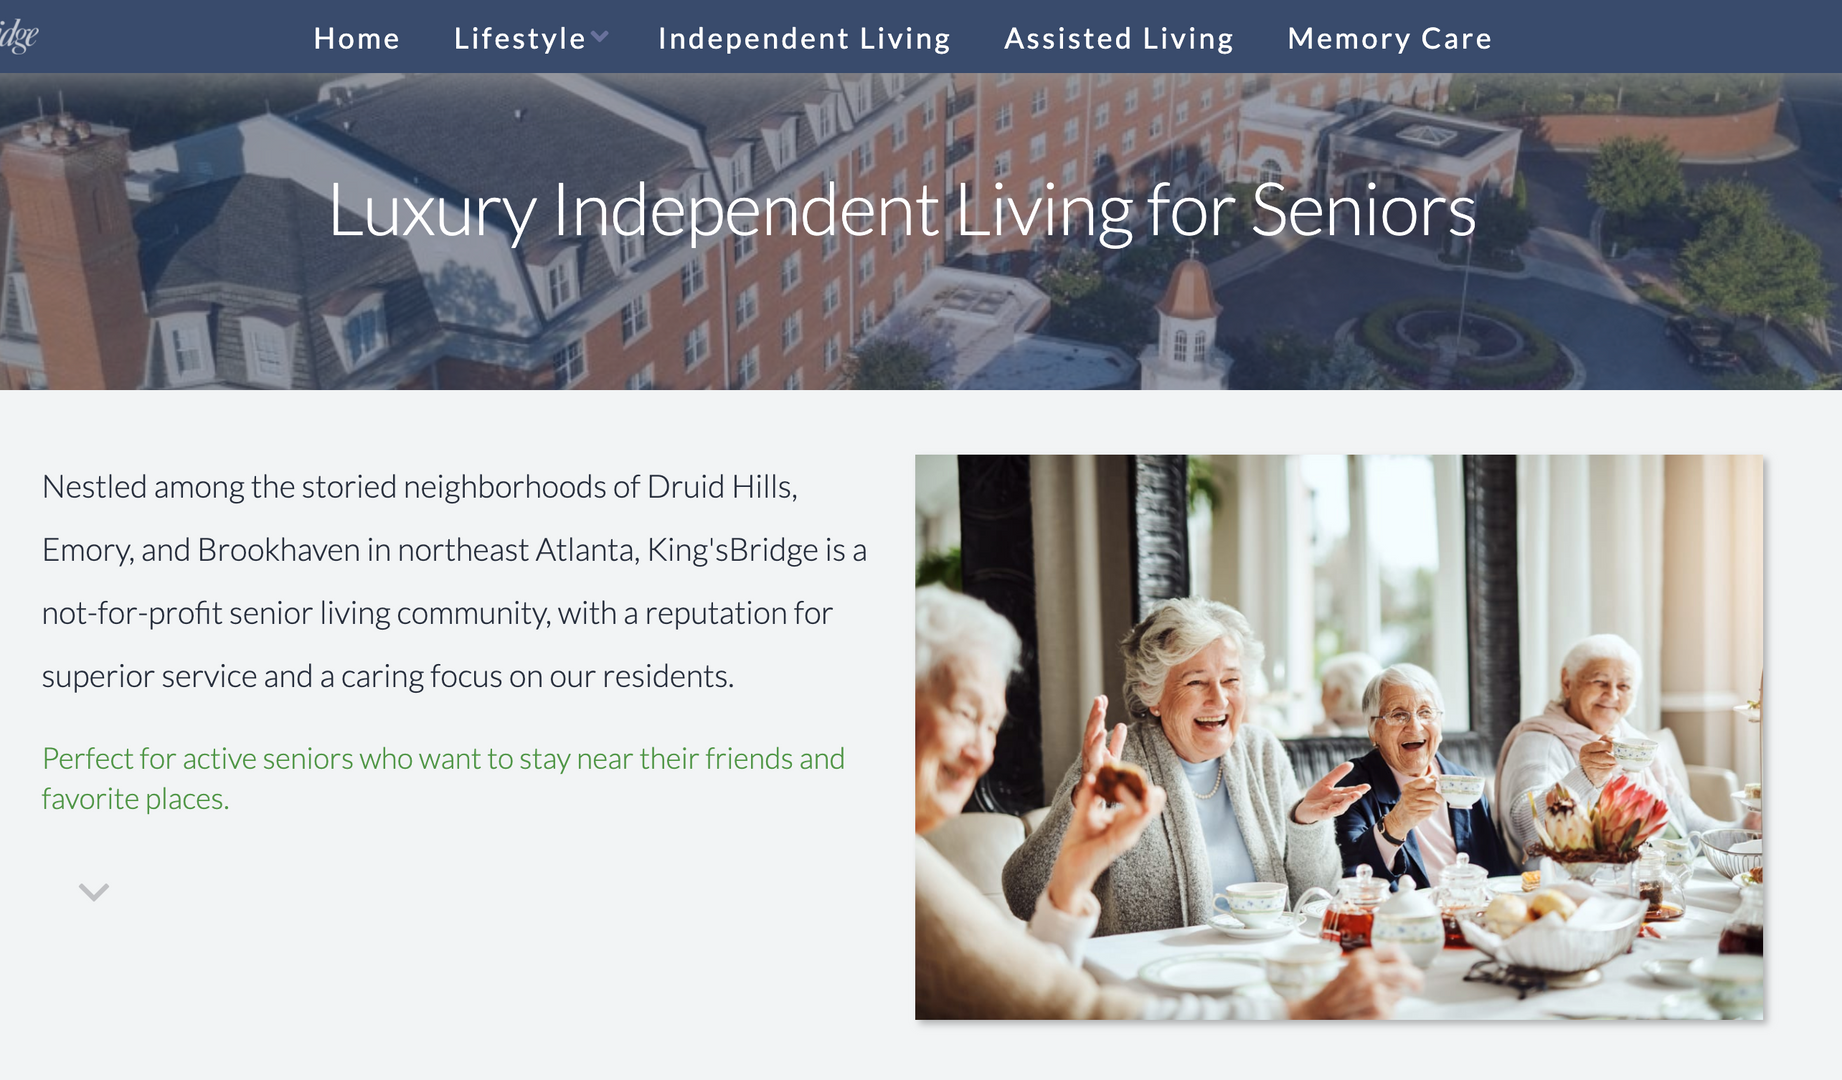 King'sBridge Retirement Community